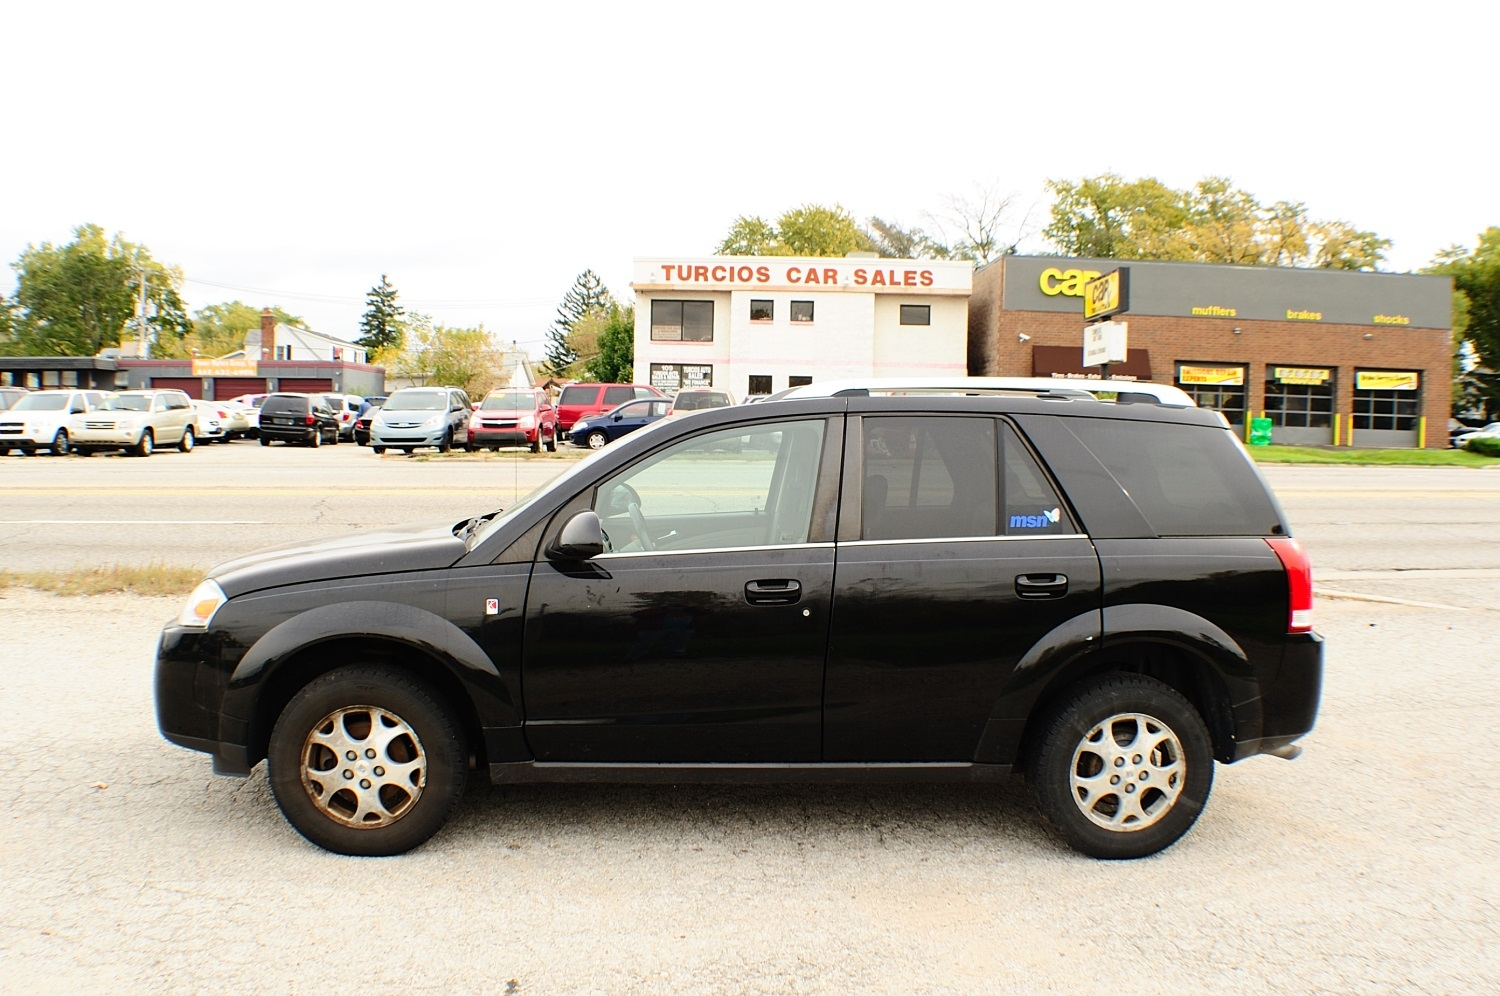 2006 Saturn Vue Black 4x2 used SUV used car sale Antioch Zion Waukegan Lake County Illinois